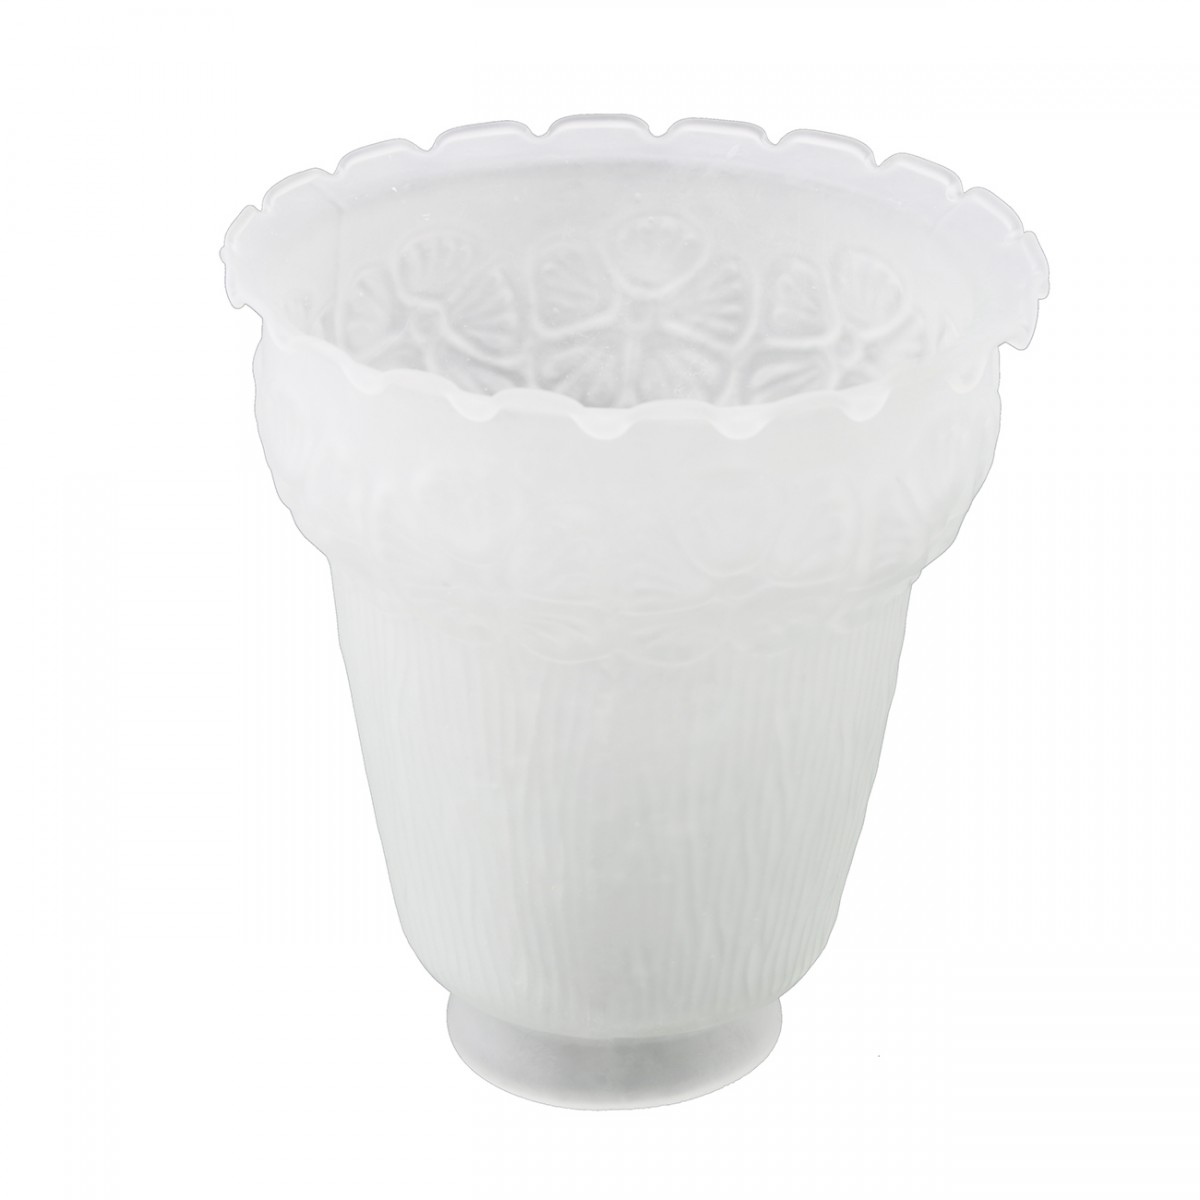 12 Lamp Shade Frosted Glass Flowers Bell 5 12 H 2 14 Fitter Lamp Shades Lamp Shade Glass Lamp Shade